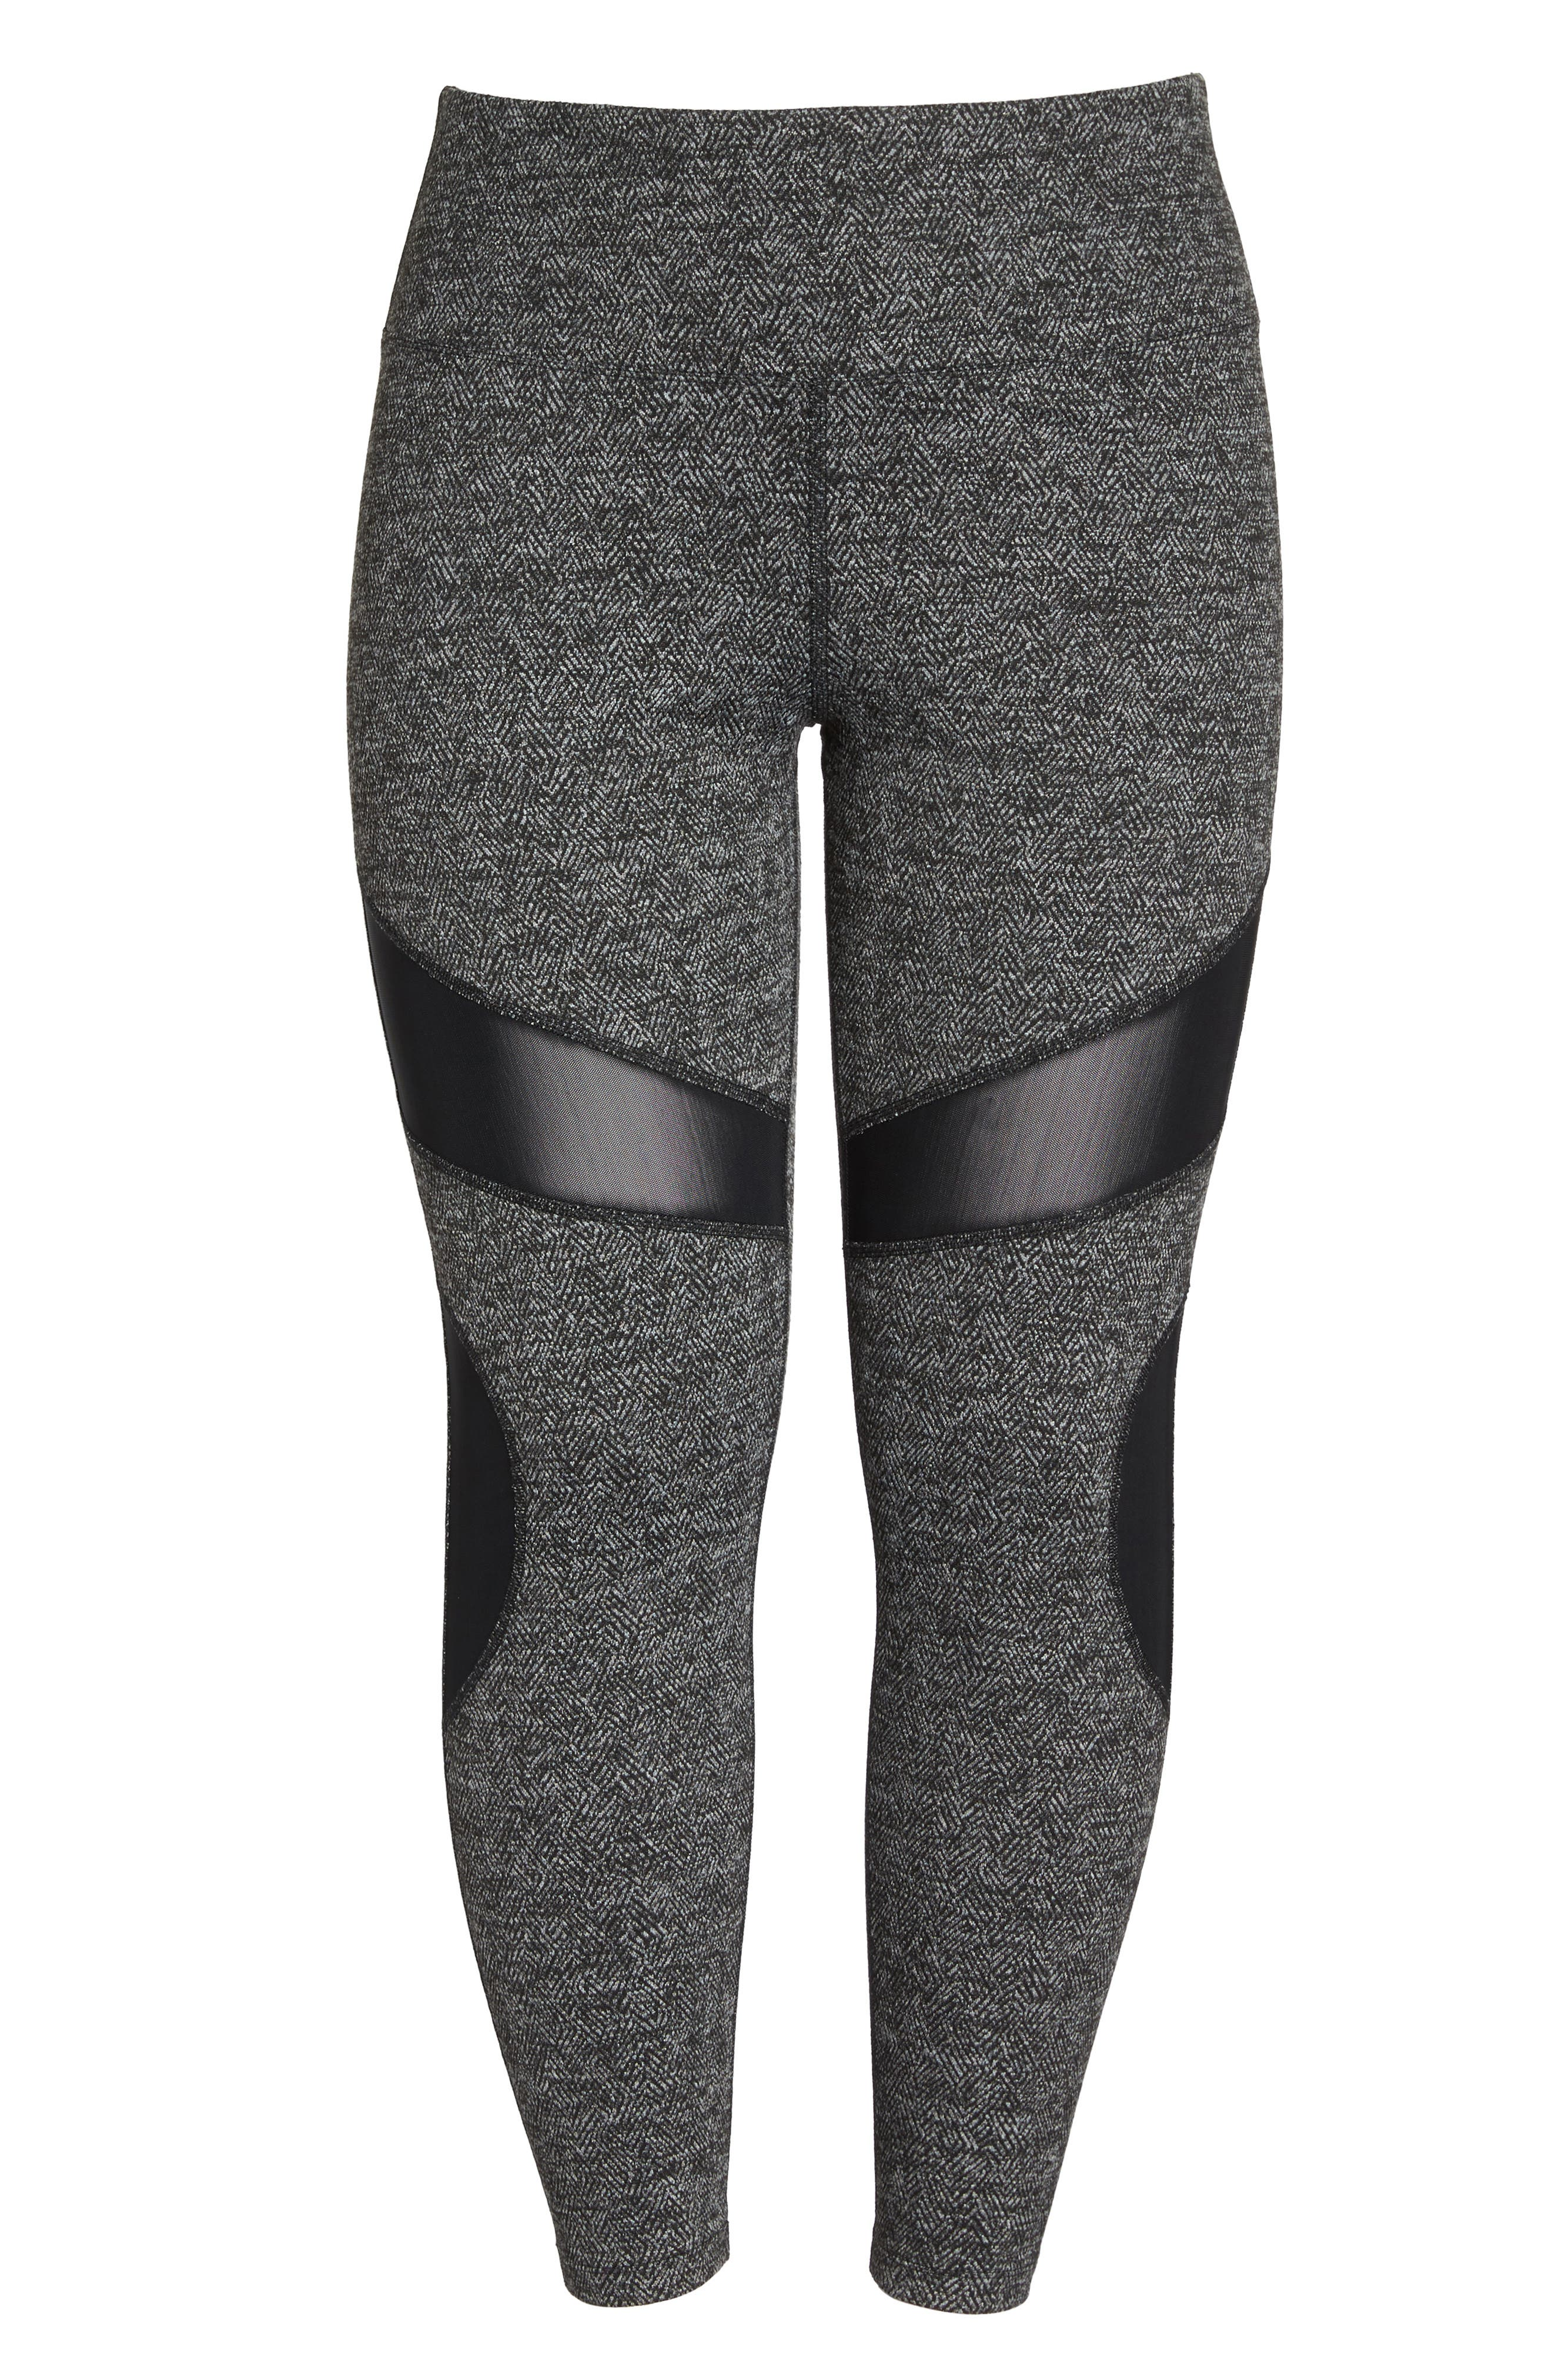 Optic High Waist Leggings,                             Alternate thumbnail 6, color,                             Black